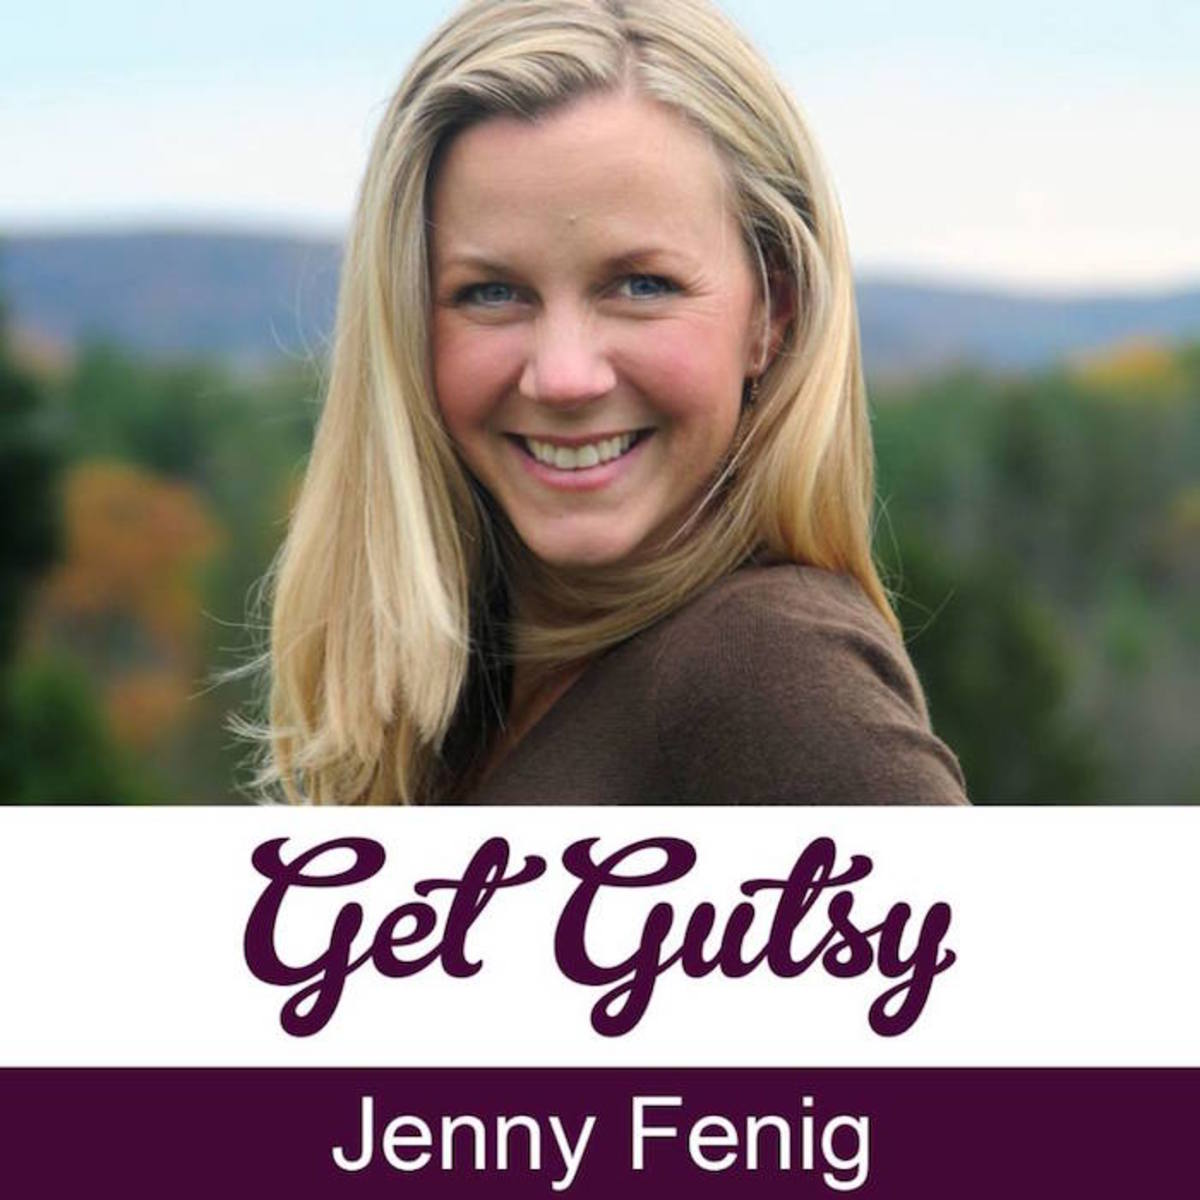 Fit Mom Profile: Jenny Fenig